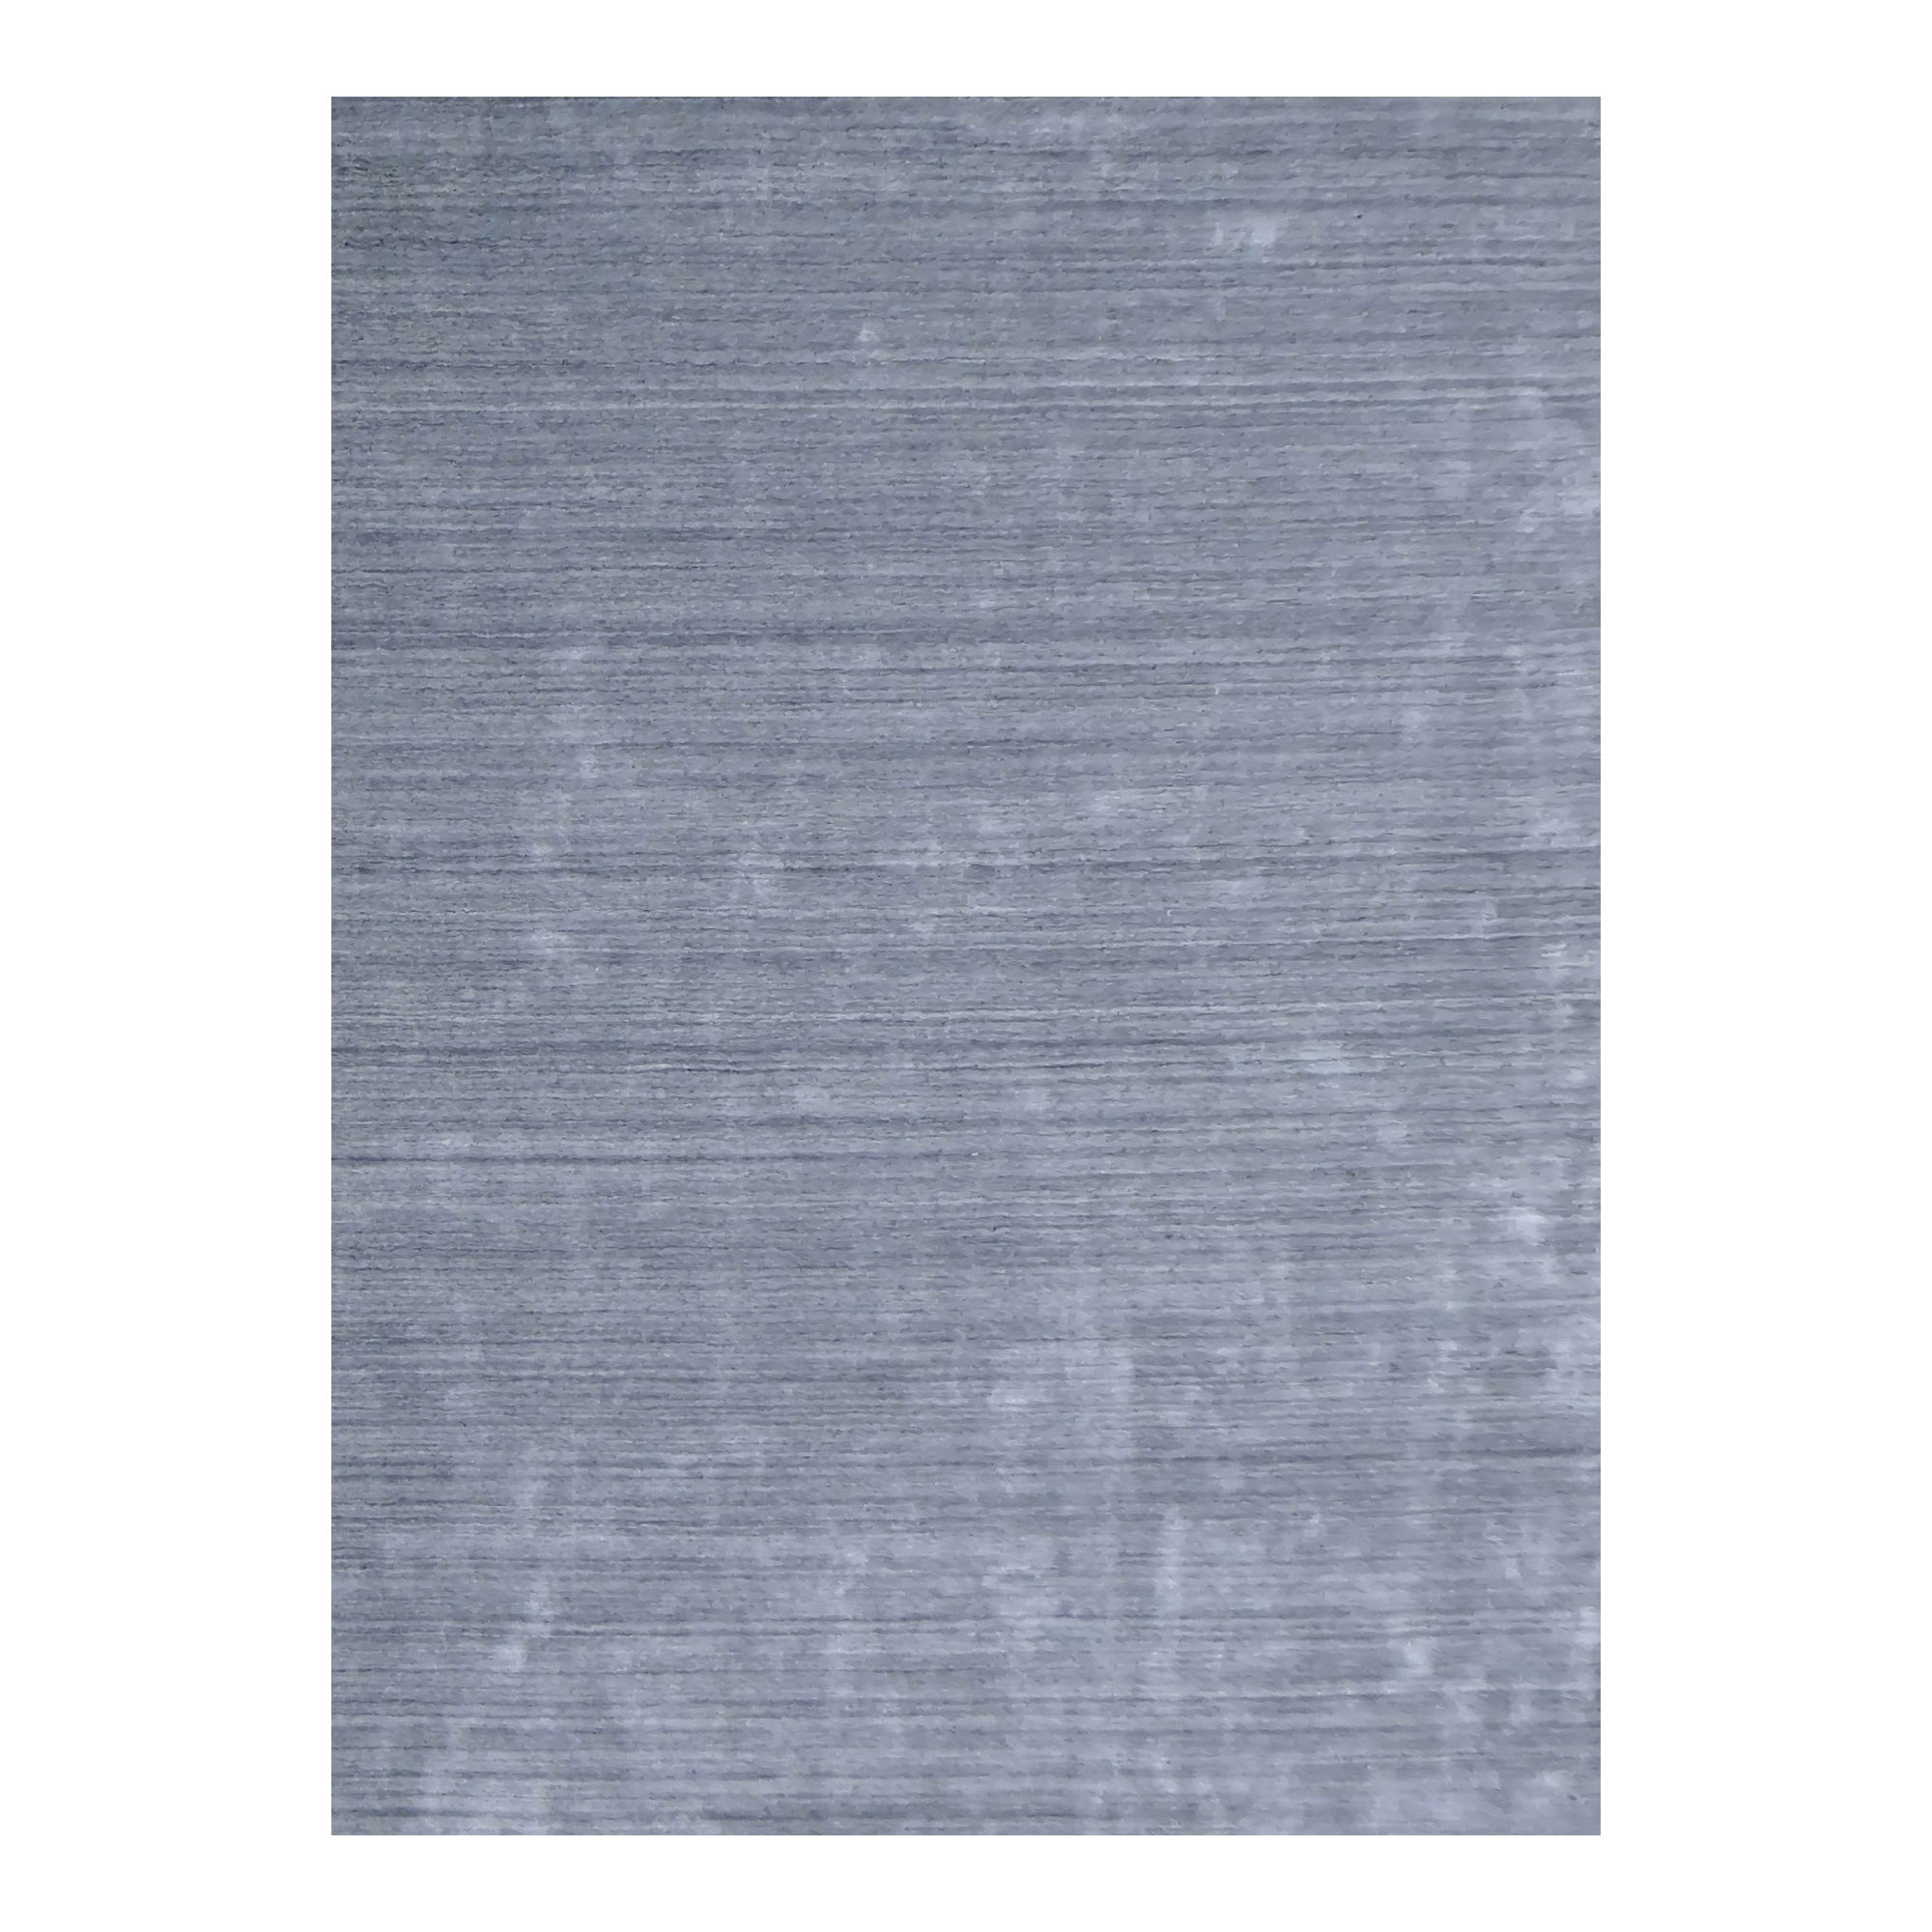 CAYENNE RUG 8X10, Grey - Tops-Dress